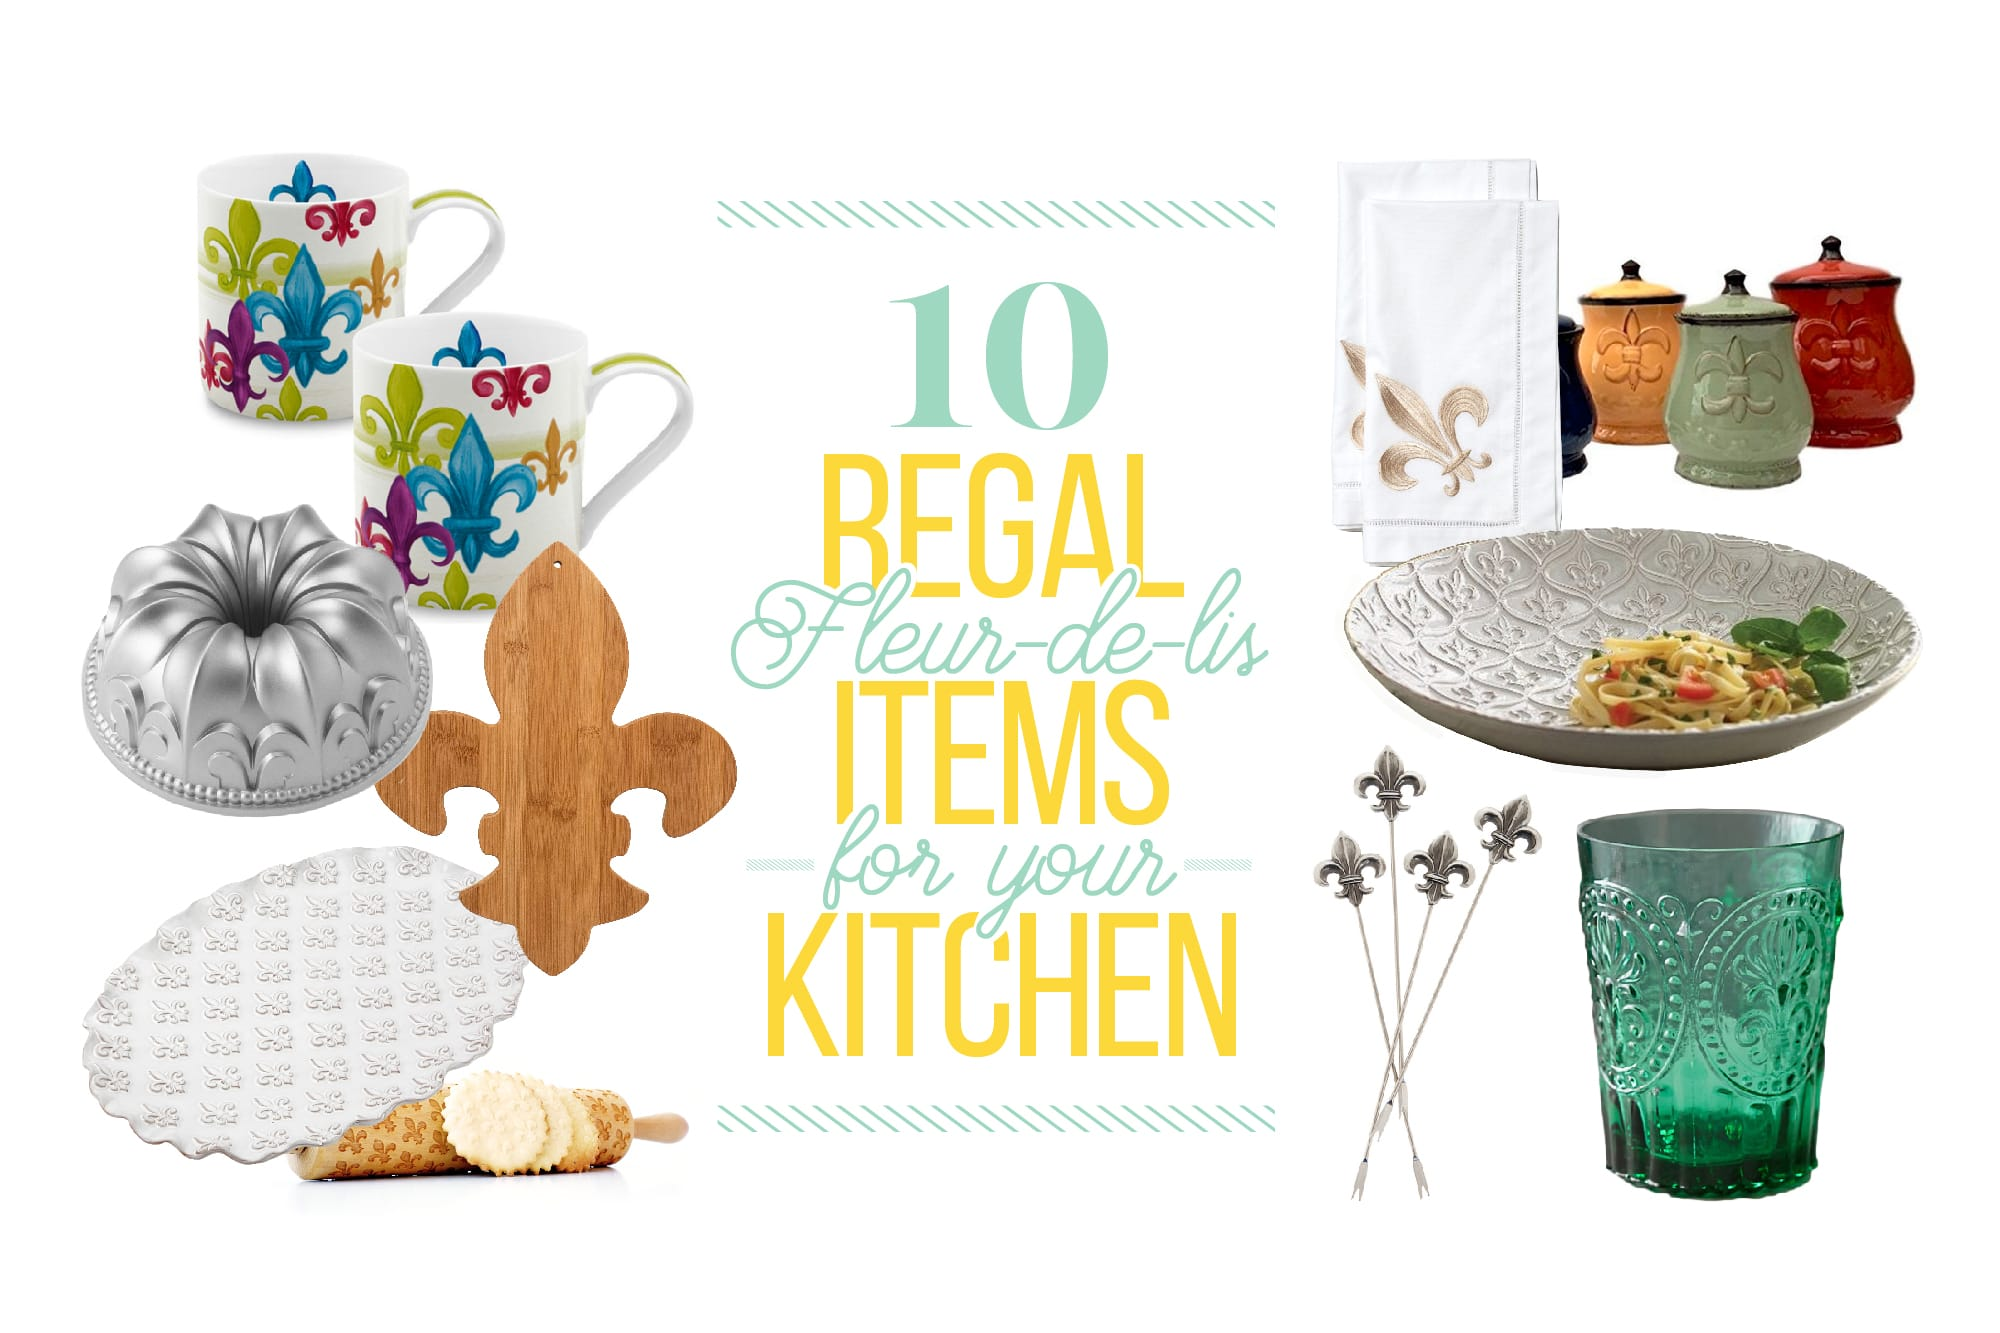 10 Fleur-de-Lis Finds to Make Your Kitchen Feel More French: gallery image 1